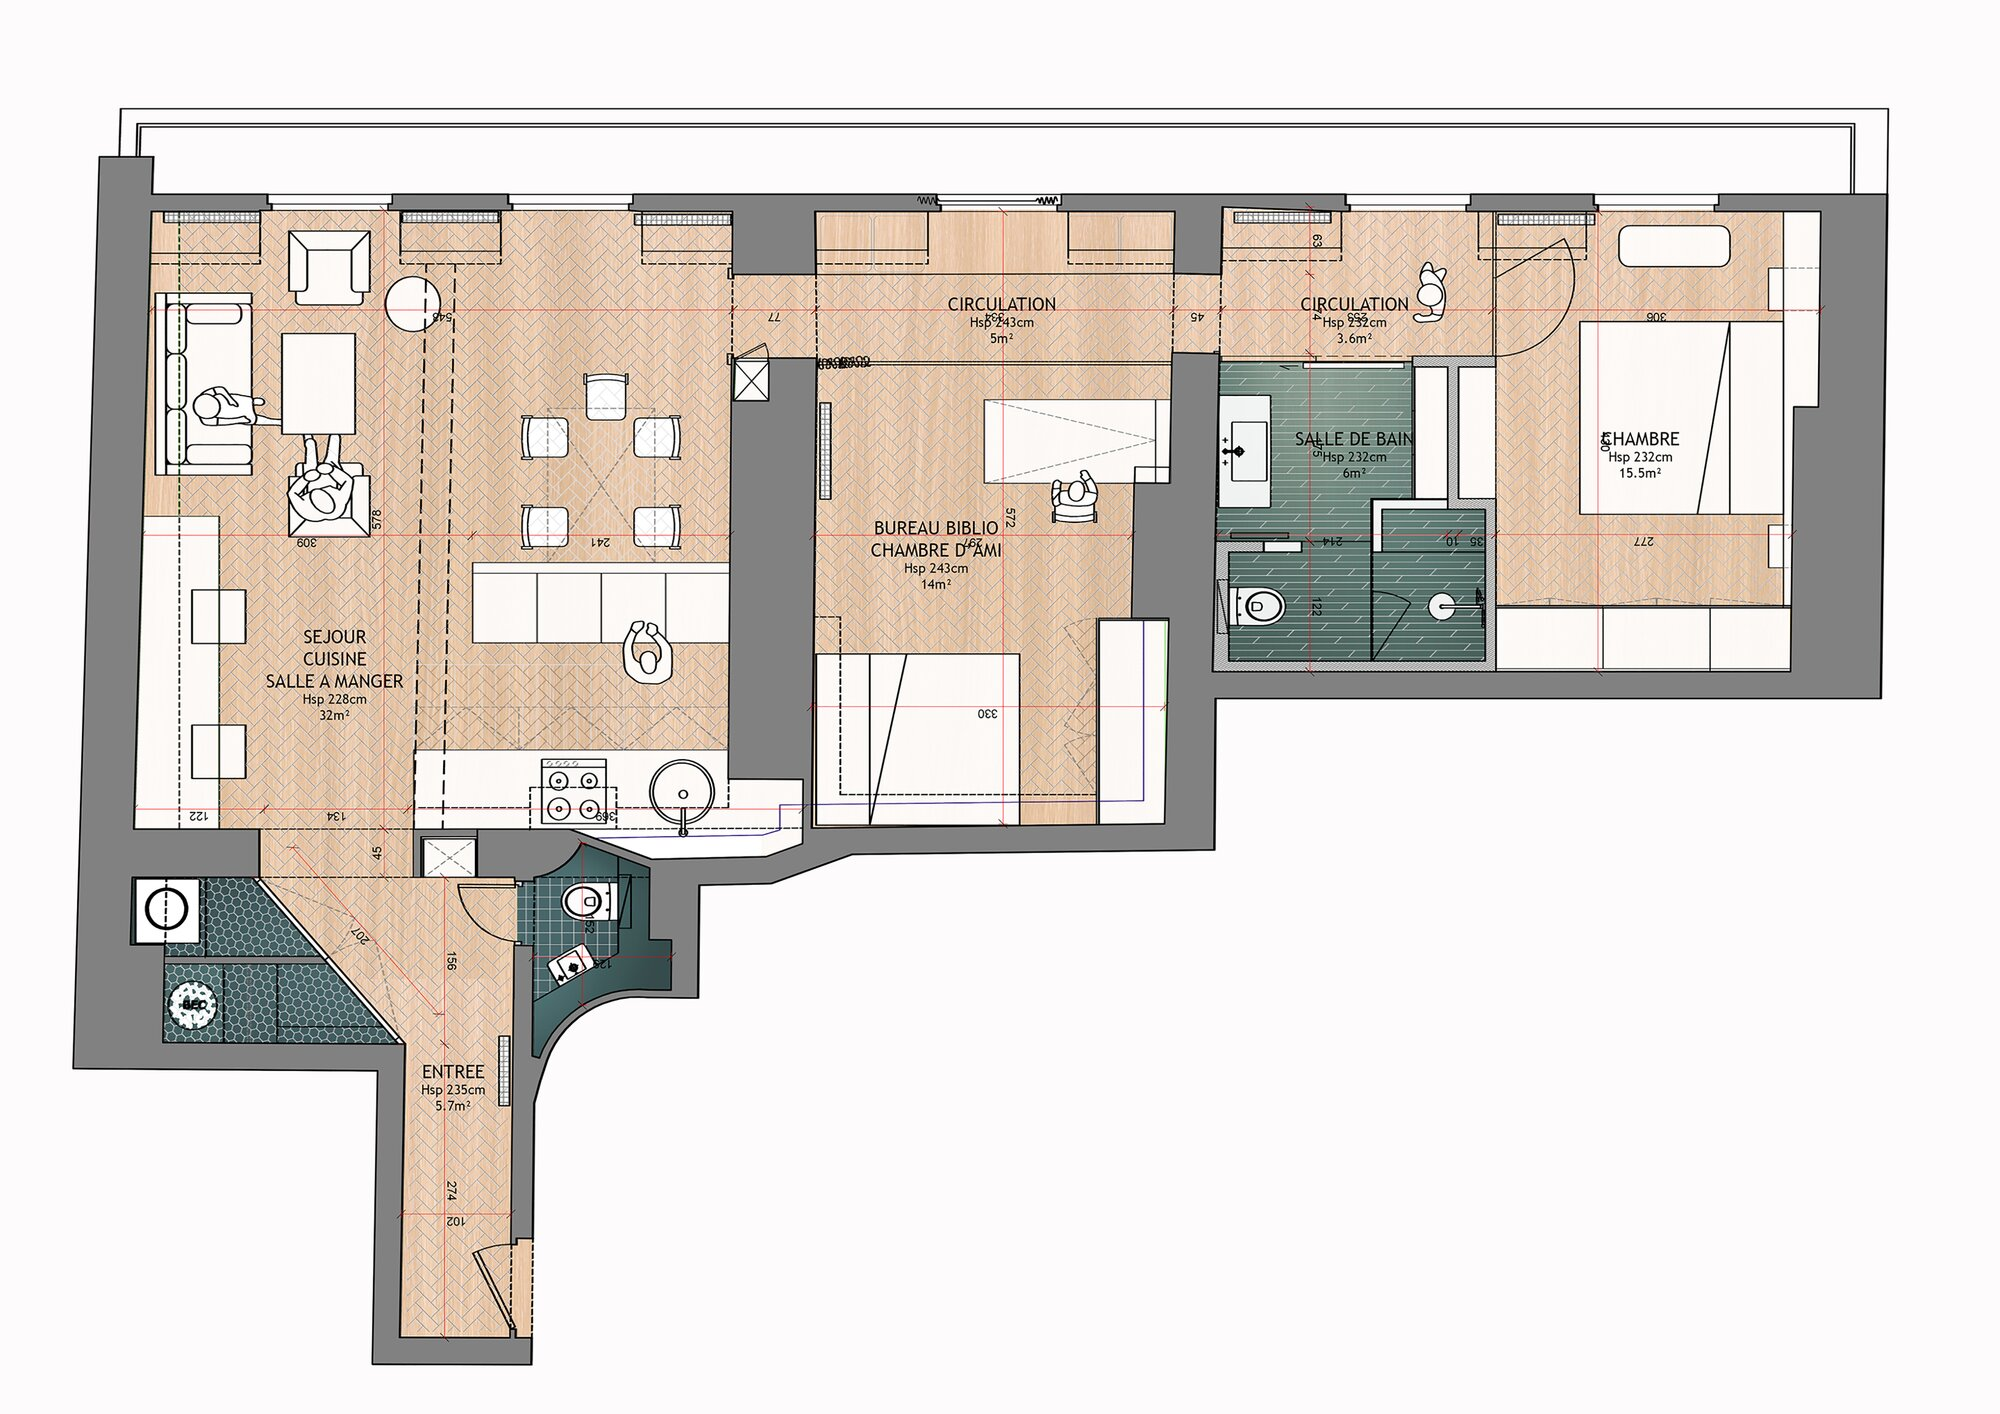 Apartment Remodel - Alia Bengana - Paris - Floor Plan - Humble Homes